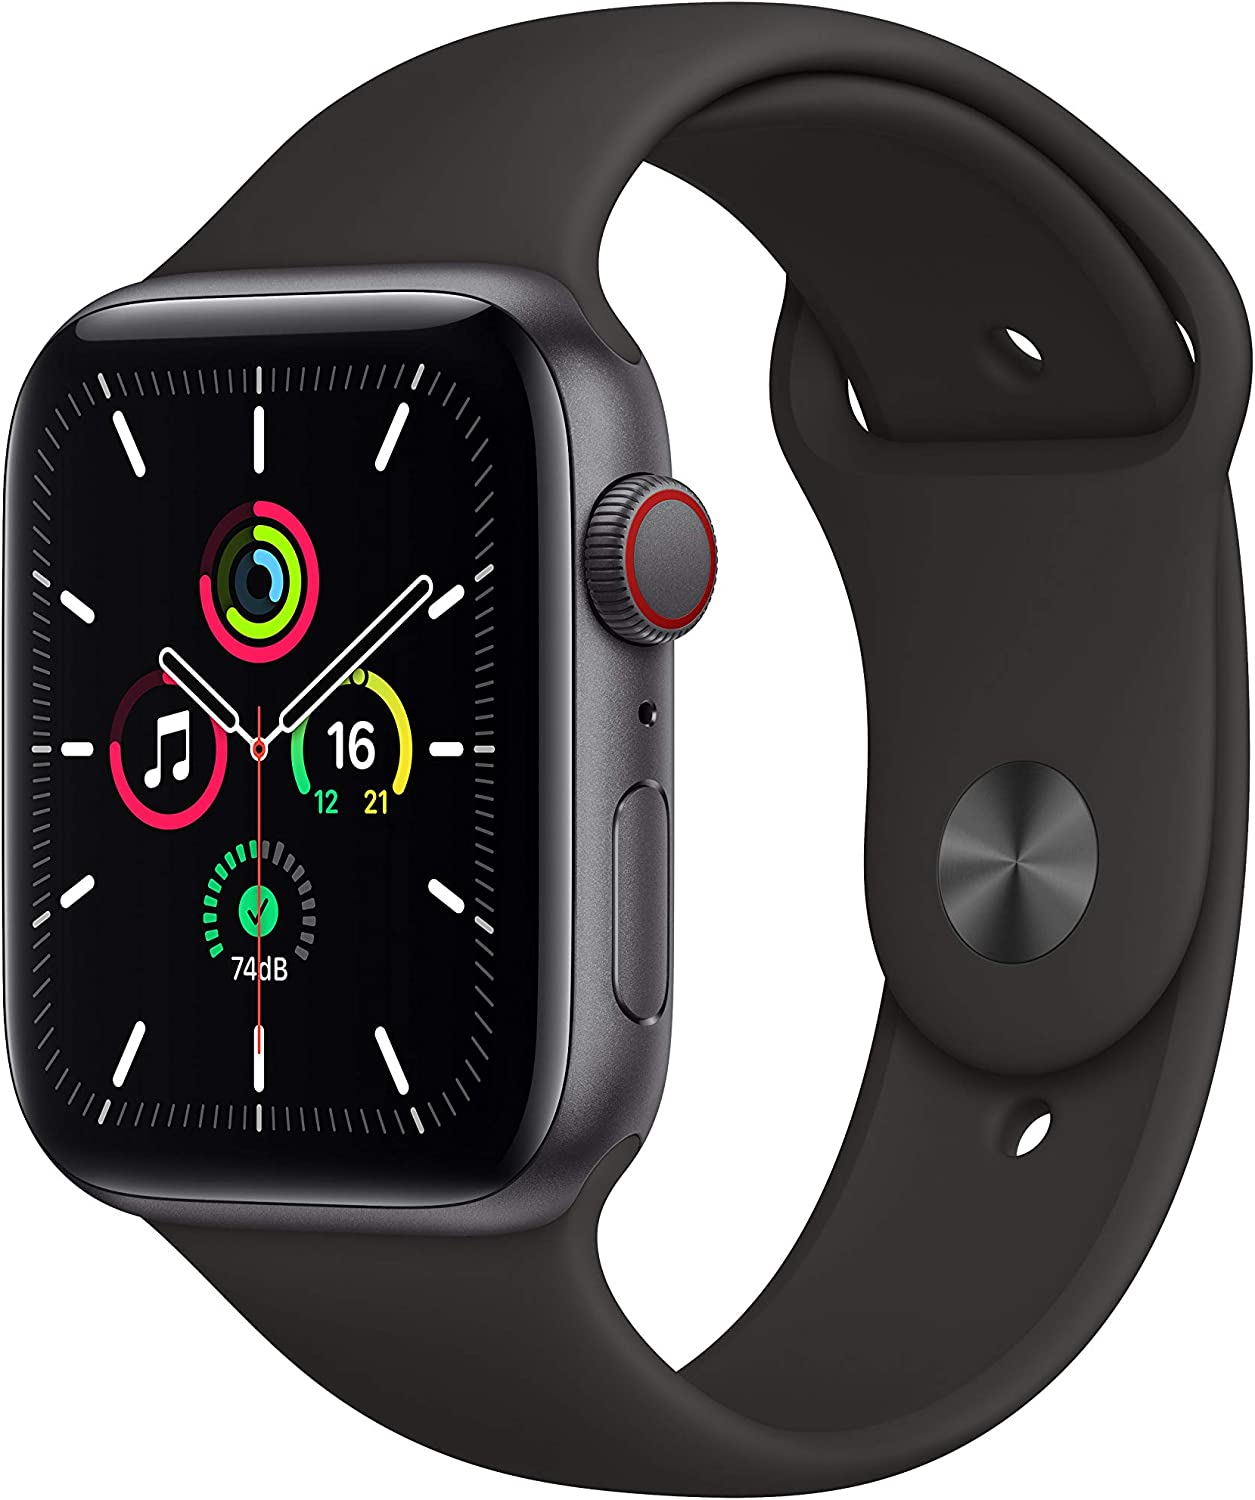 Apple Watch SE (GPS + Cellular, 44 mm) Caja de aluminio en gris espacial - Correa deportiva negra